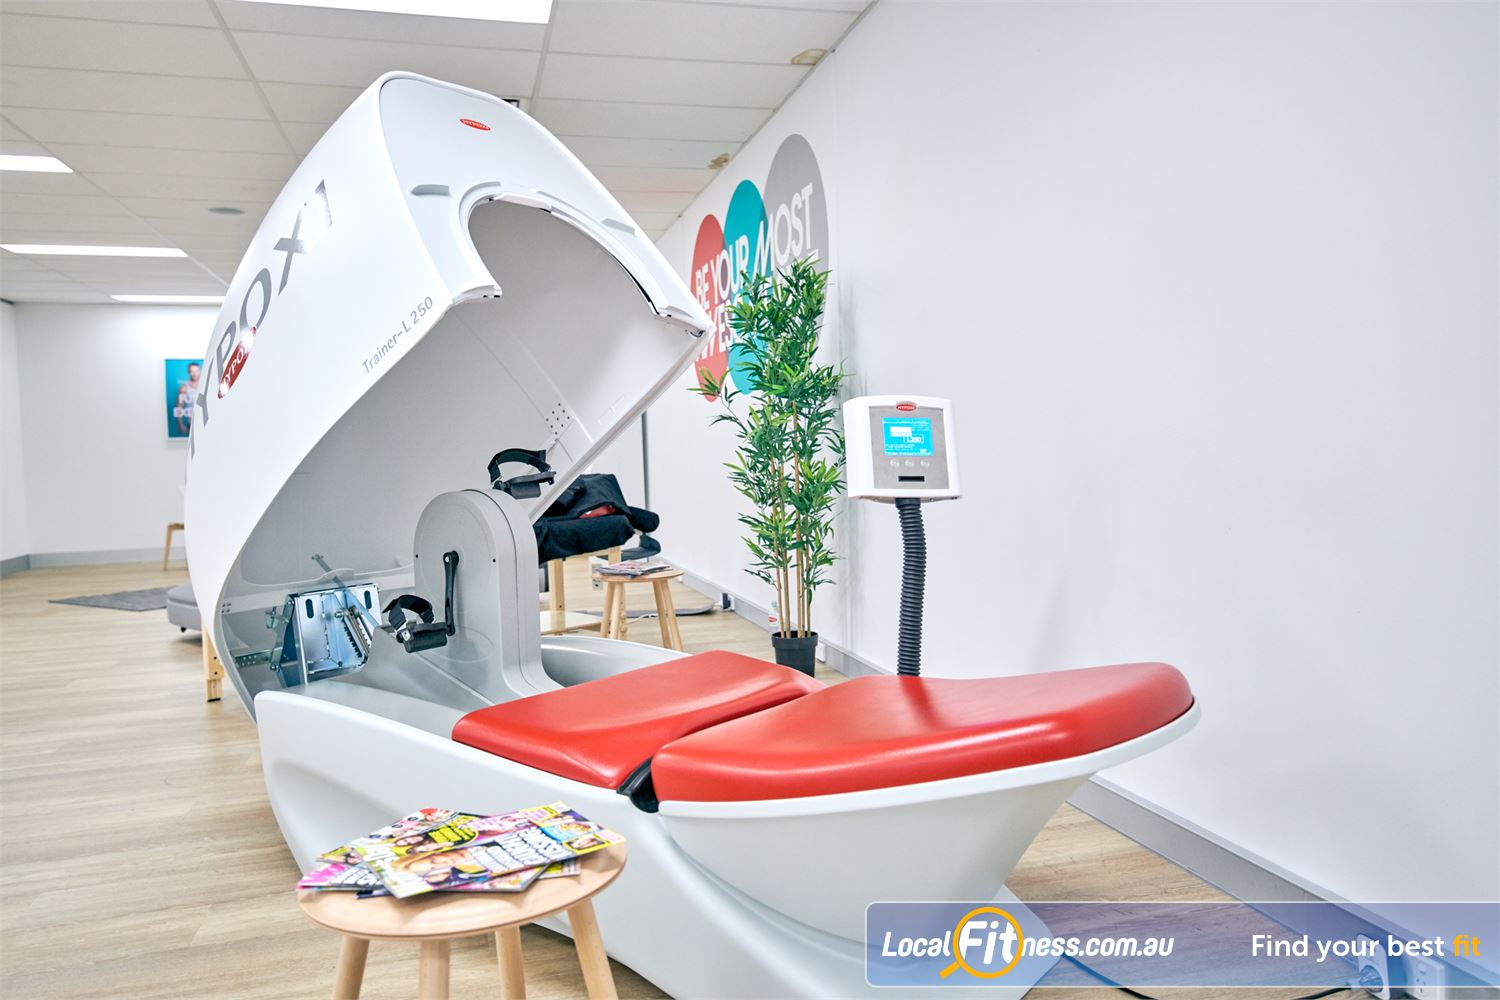 HYPOXI Weight Loss Near Mount Ommaney For women HYPOXI is great for Jindalee cellulite reduction.